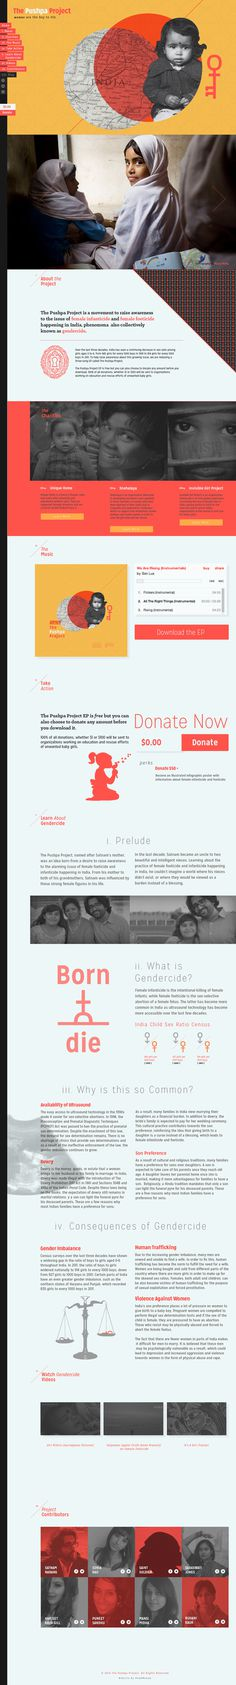 Pushpa Project Website #icon #infographic #website #illustration #key #layout #female #typography